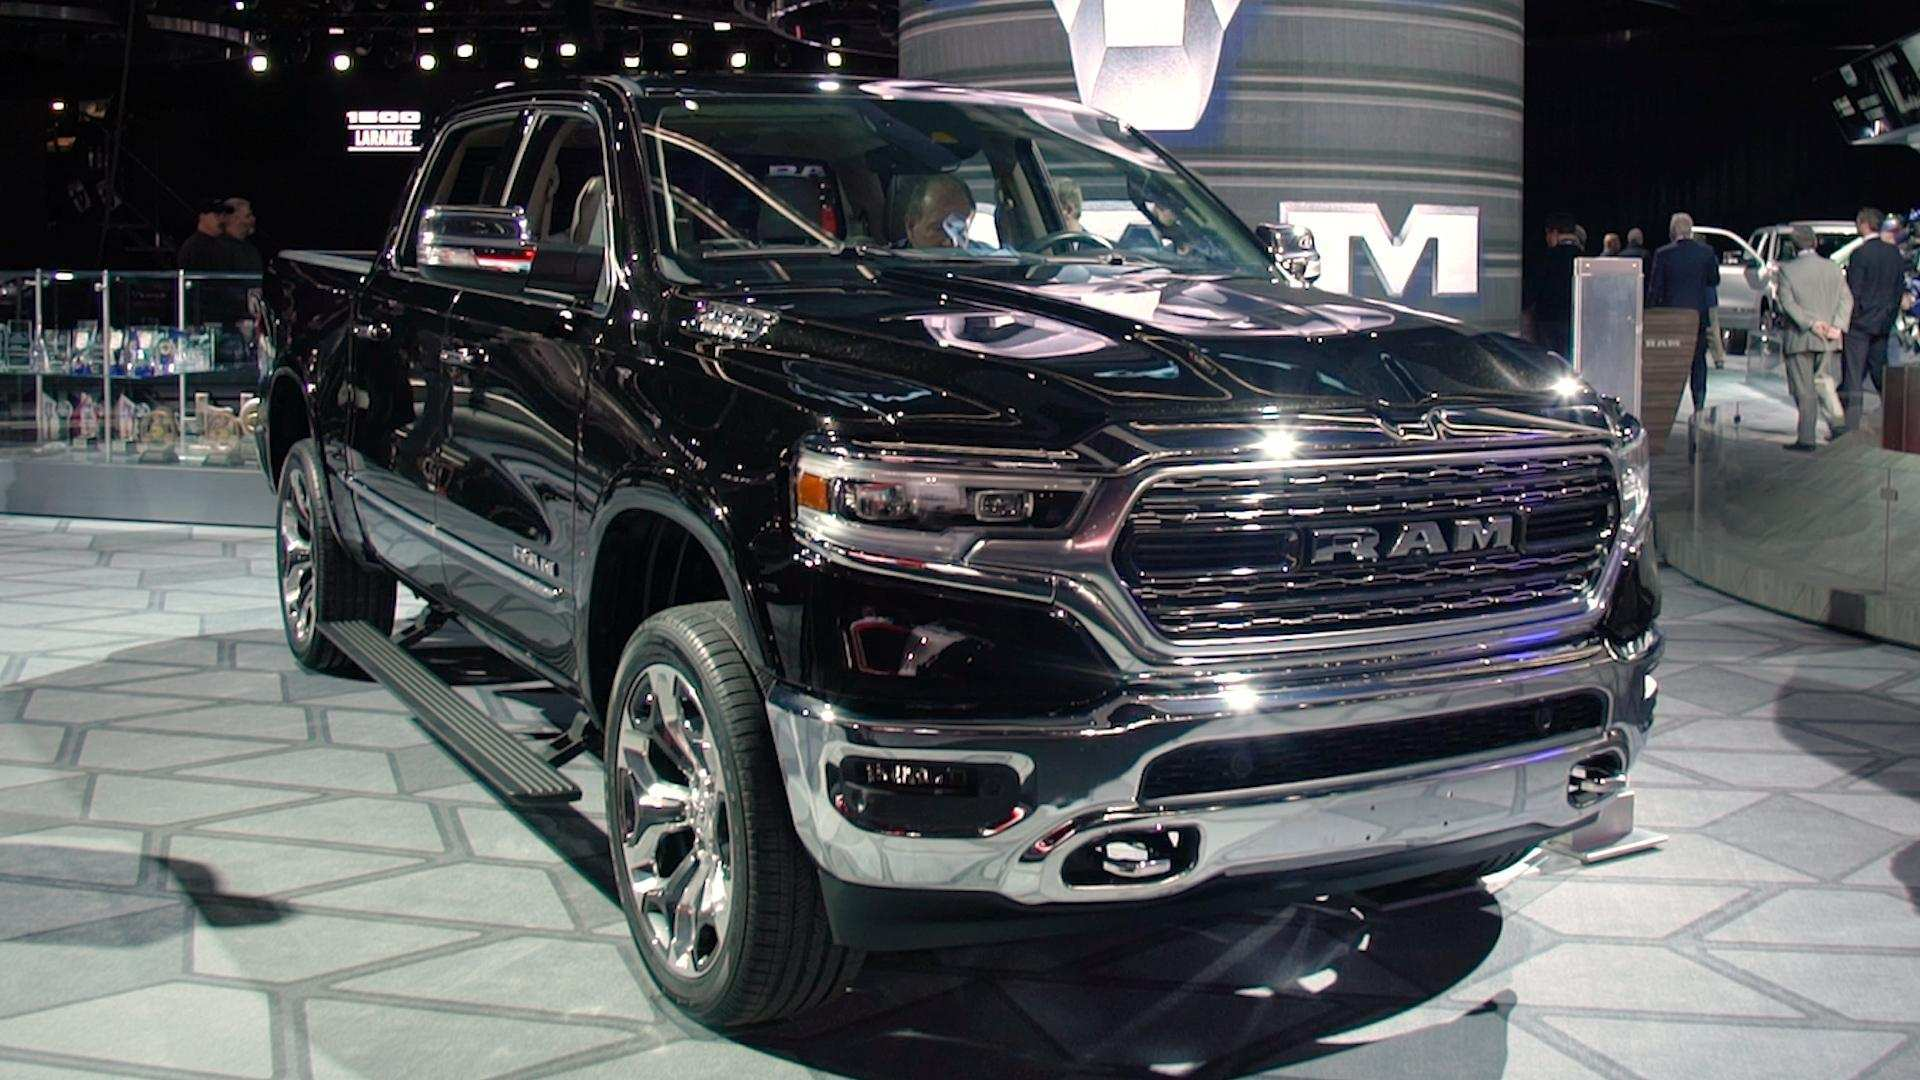 72 All New 2019 Dodge Ram Laramie Specs for 2019 Dodge Ram Laramie